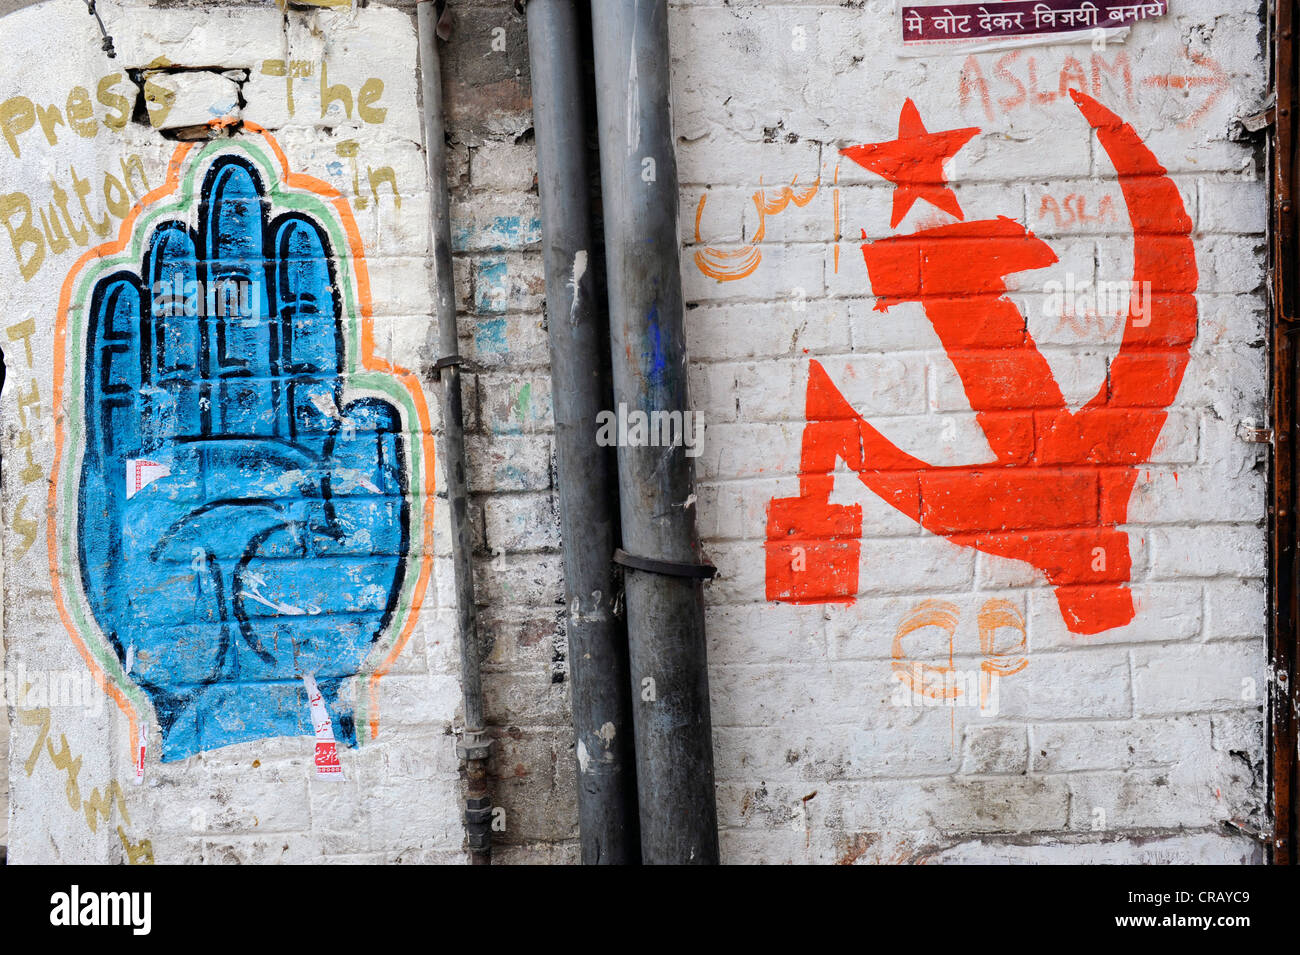 Symbols Of The Indian Congress Party And The Communist Party Painted